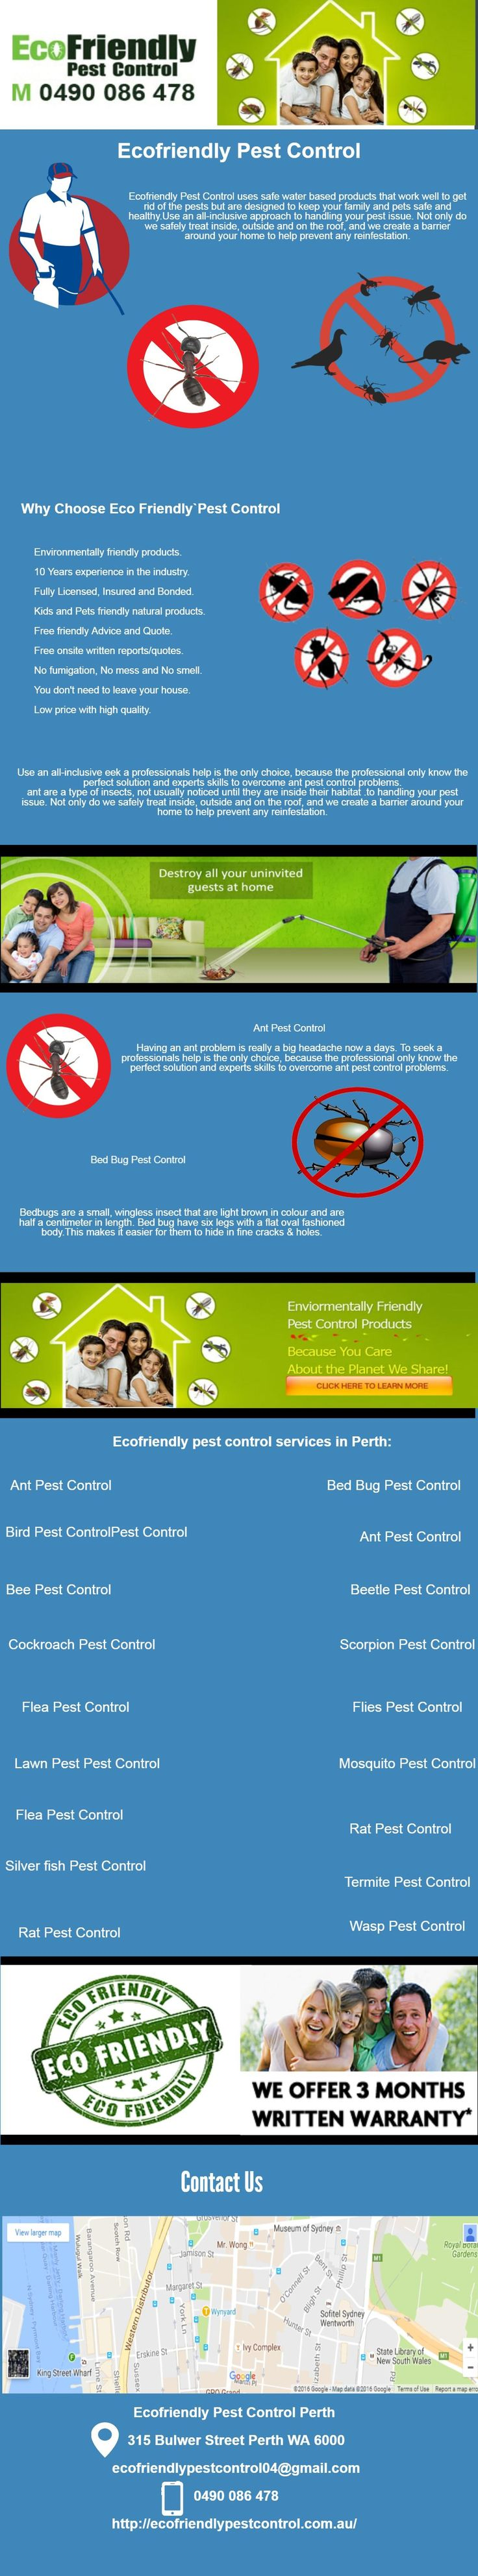 Are you having problem with Ants or with cockroaches, spiders, fleas, bed bugs, in your house? If your home is being invaded by termites, insects, cockroaches or other pests, there's no need to panic because Ecofriendly pest control in Perth can help . So why wait, check our Packages or simply call us on M: 0490 086 478 or visit us at 315 Bulwer Street, Perth, WA 6000